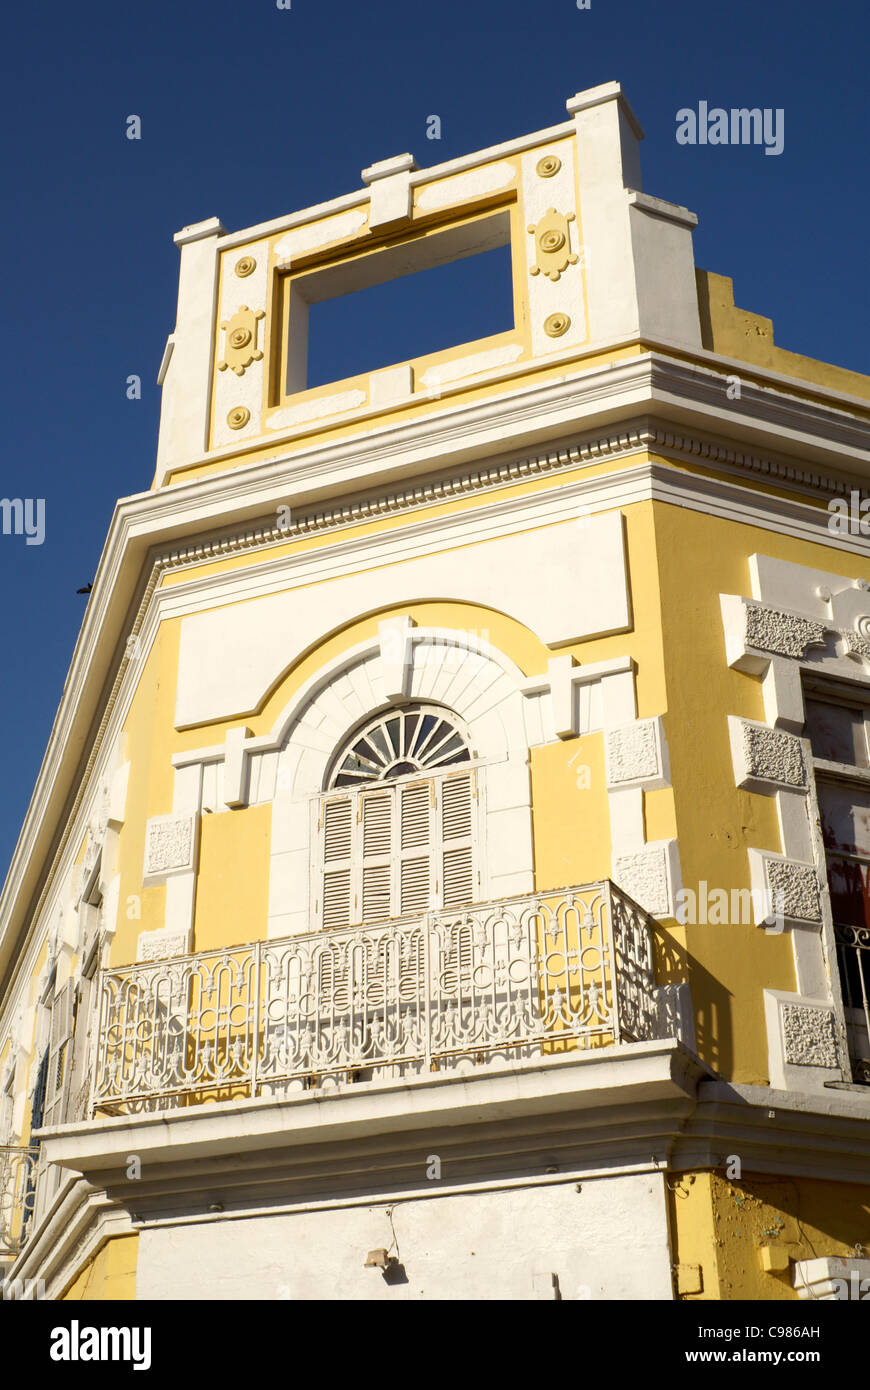 Facade of restored nineteenth century building in Old Mazatlan, Sinaloa, Mexico - Stock Image